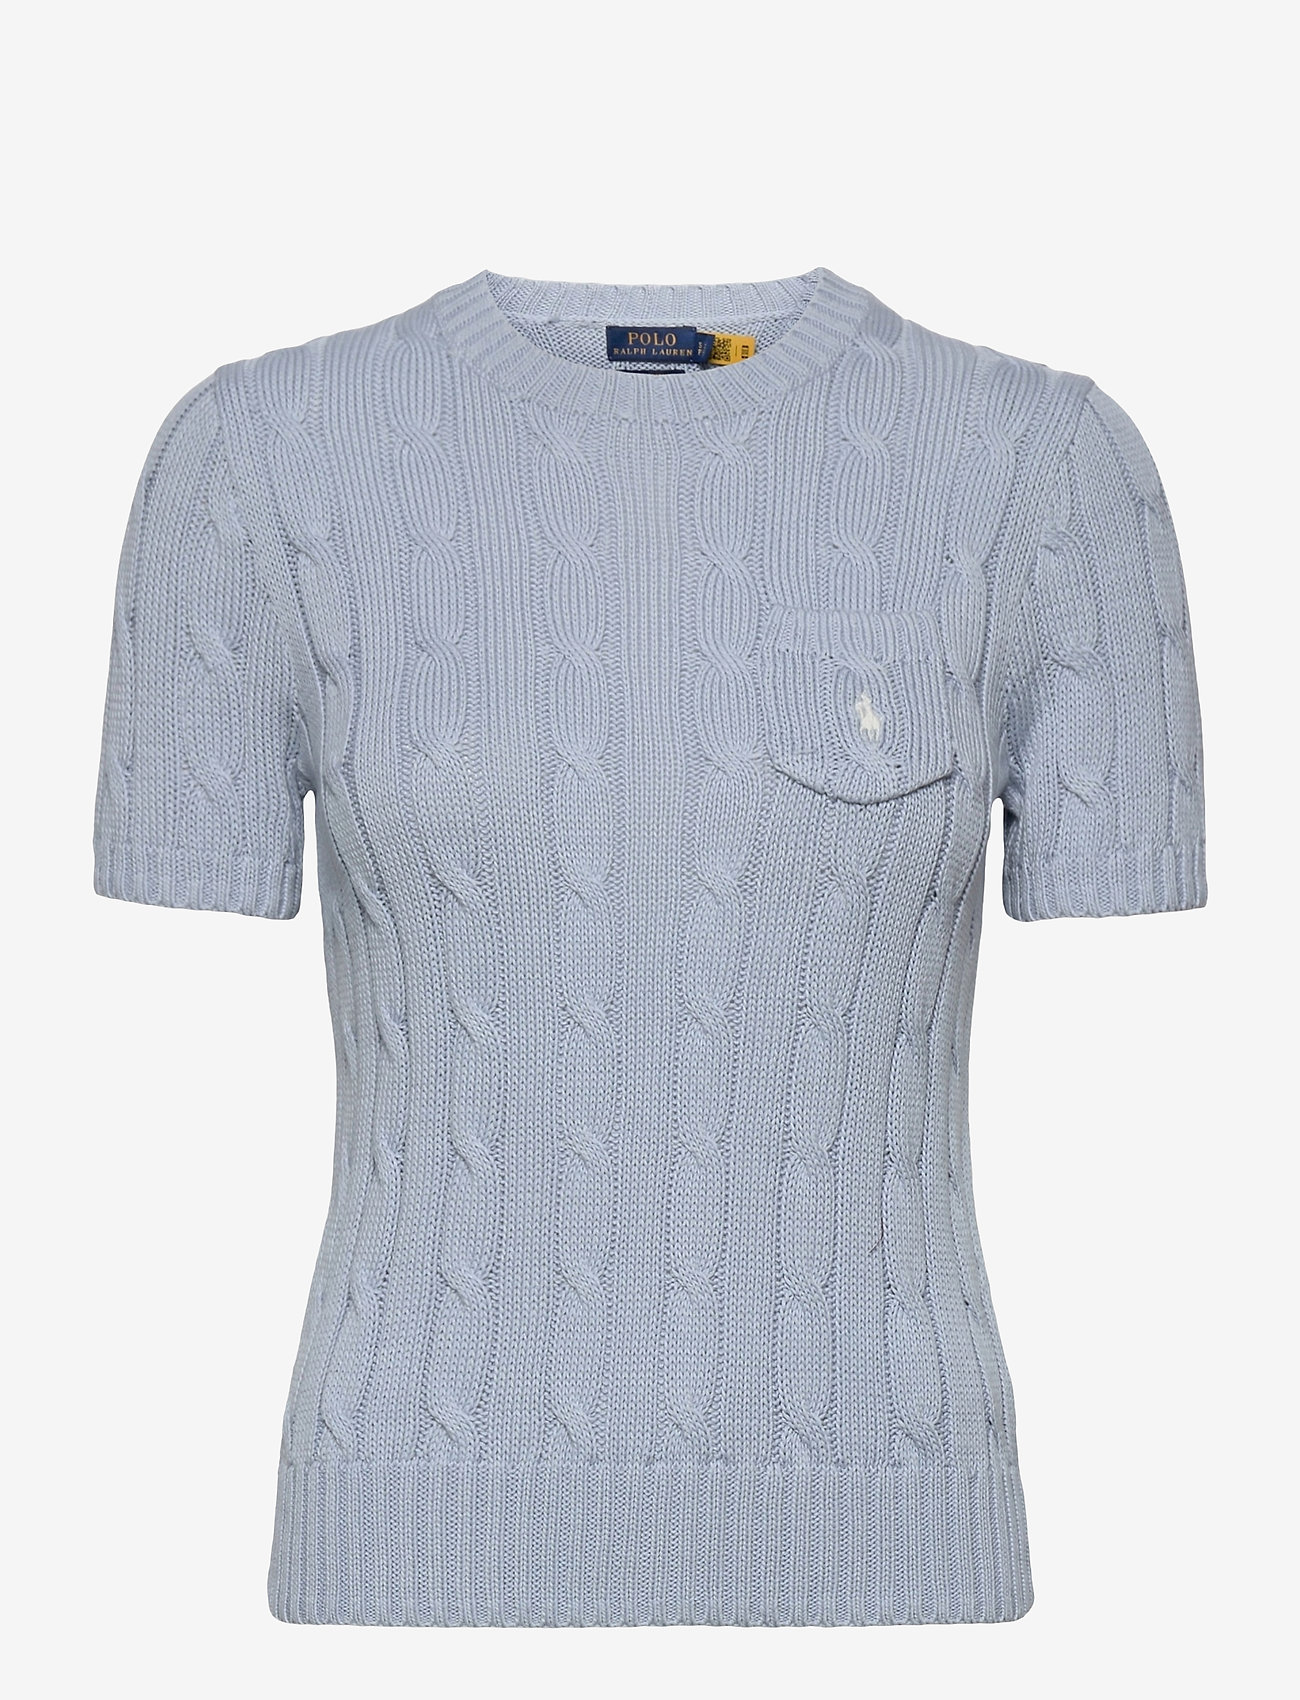 Polo Ralph Lauren - Cable Short-Sleeve Sweater - strikkede toppe - pale blue - 1